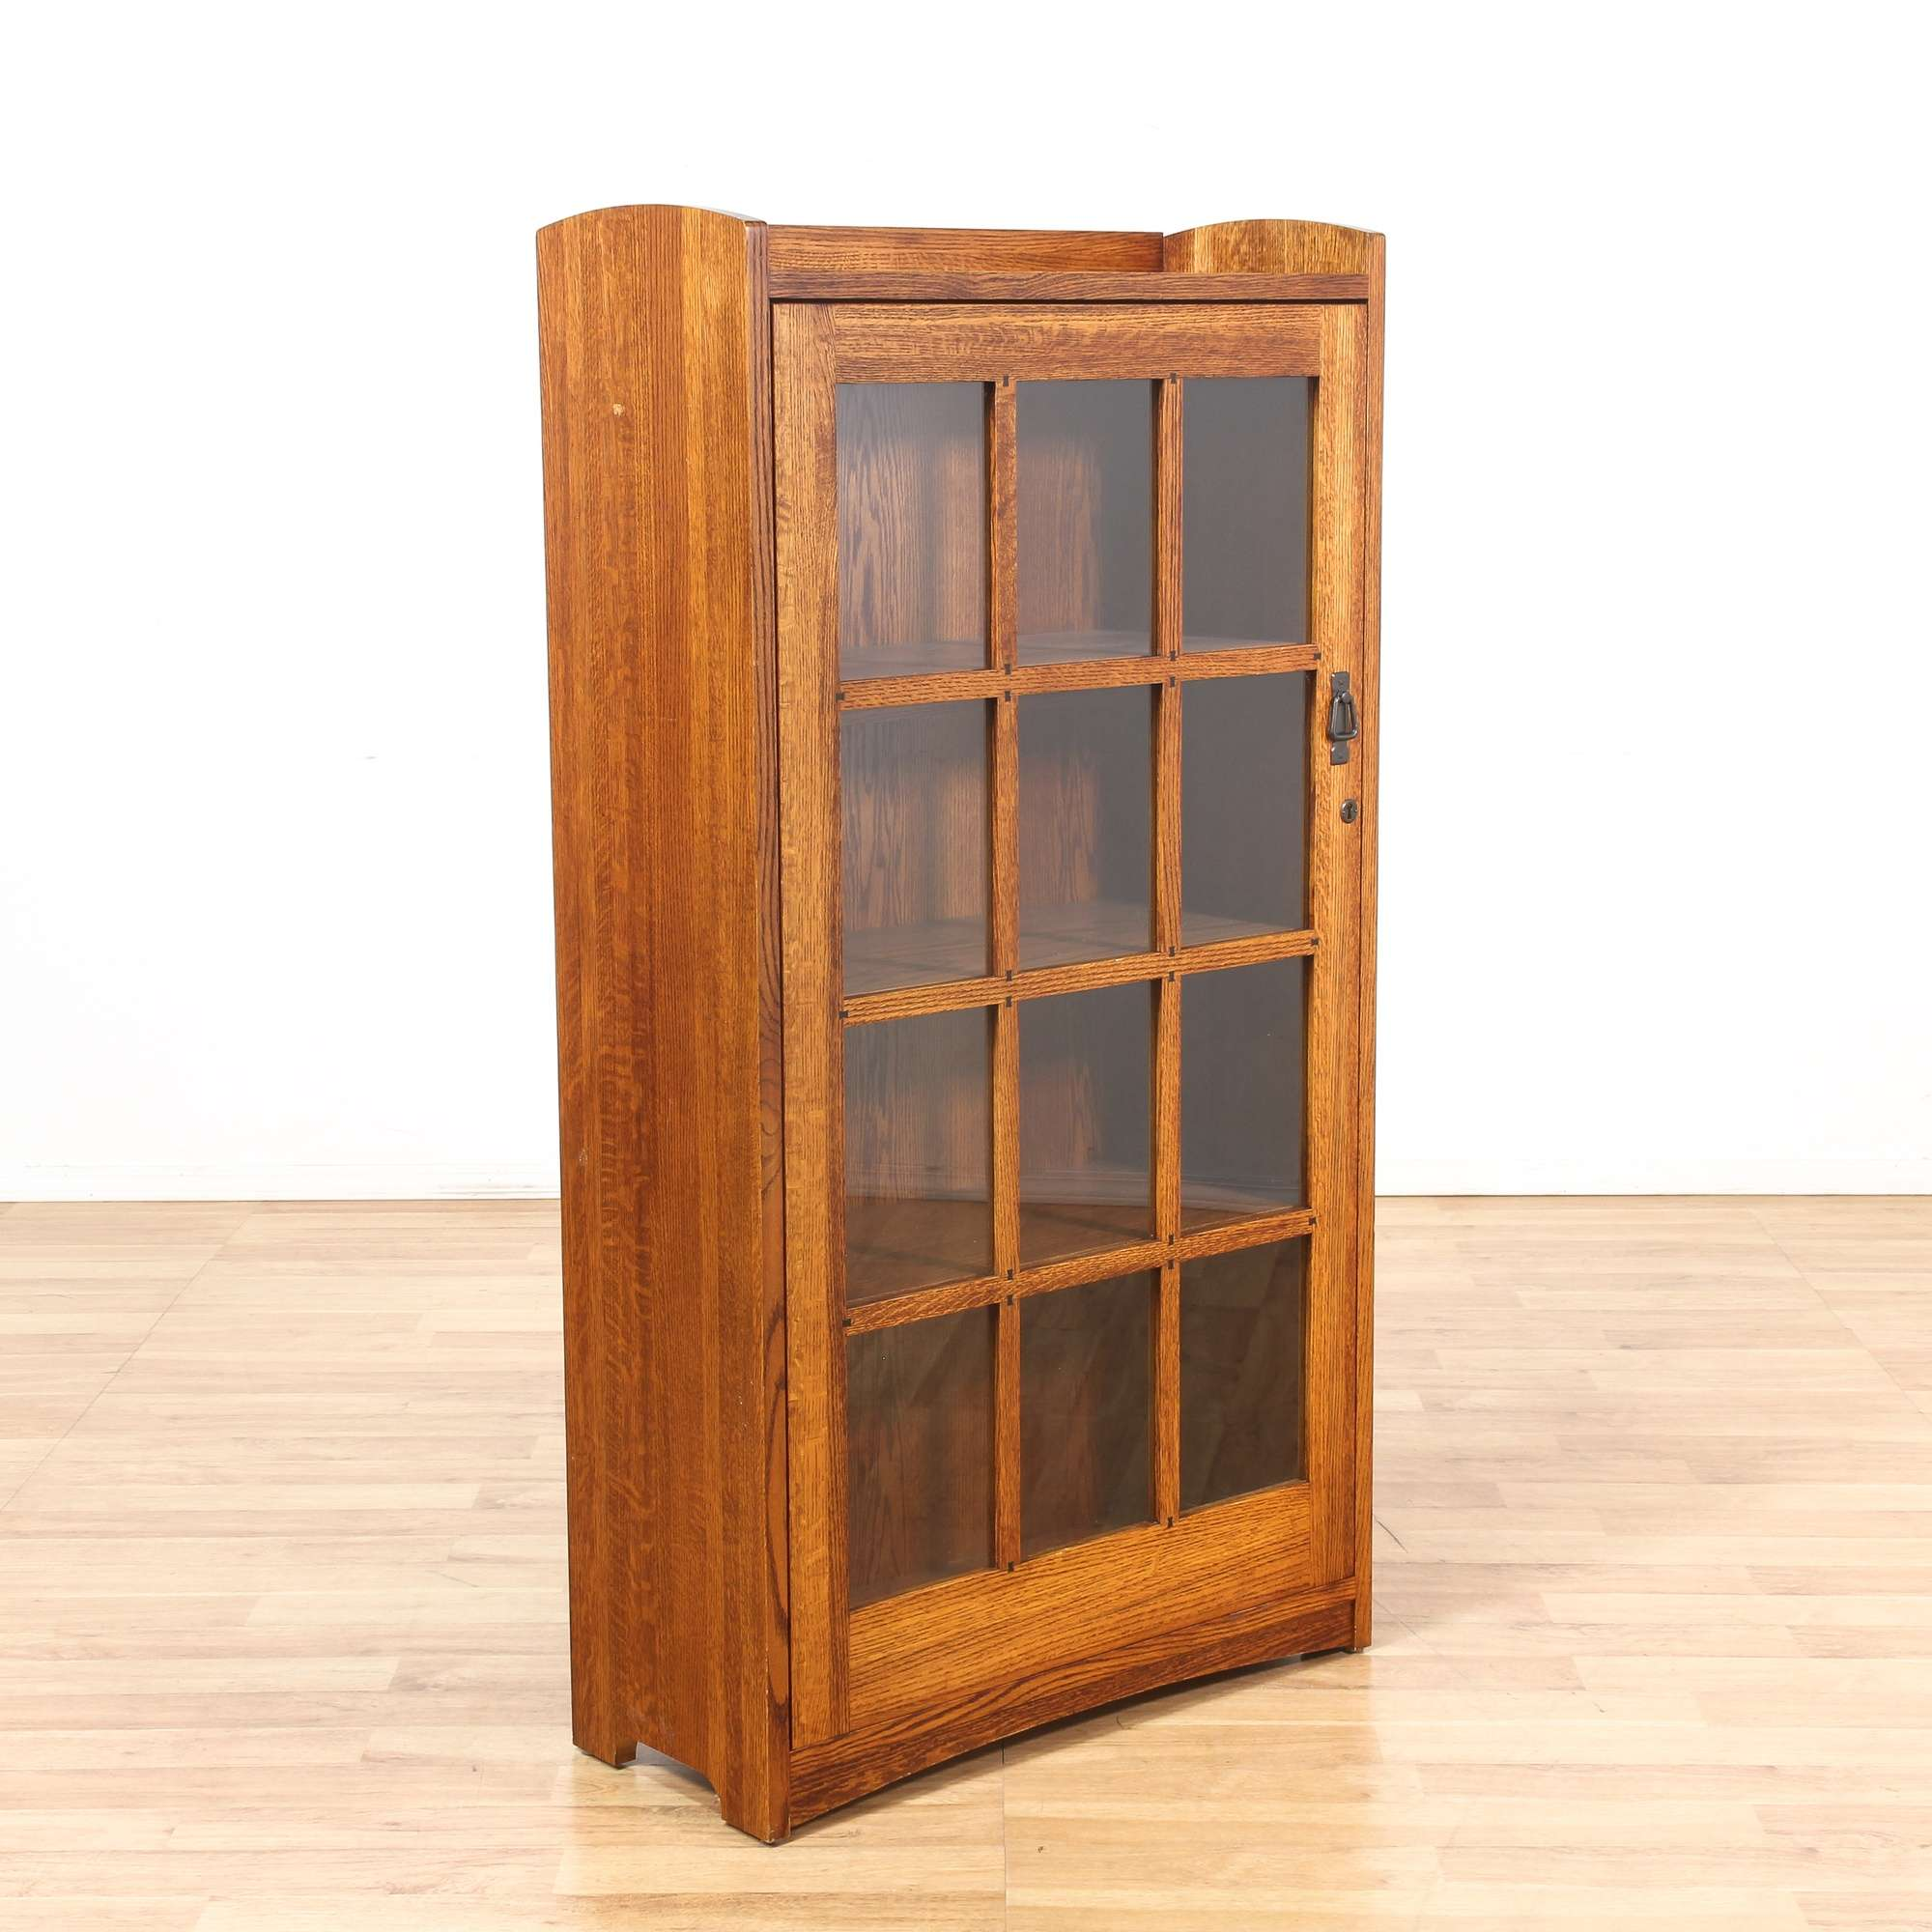 image globe aspect barristers product mission and style fit crafts s height wernicke bookcase arts barrister width